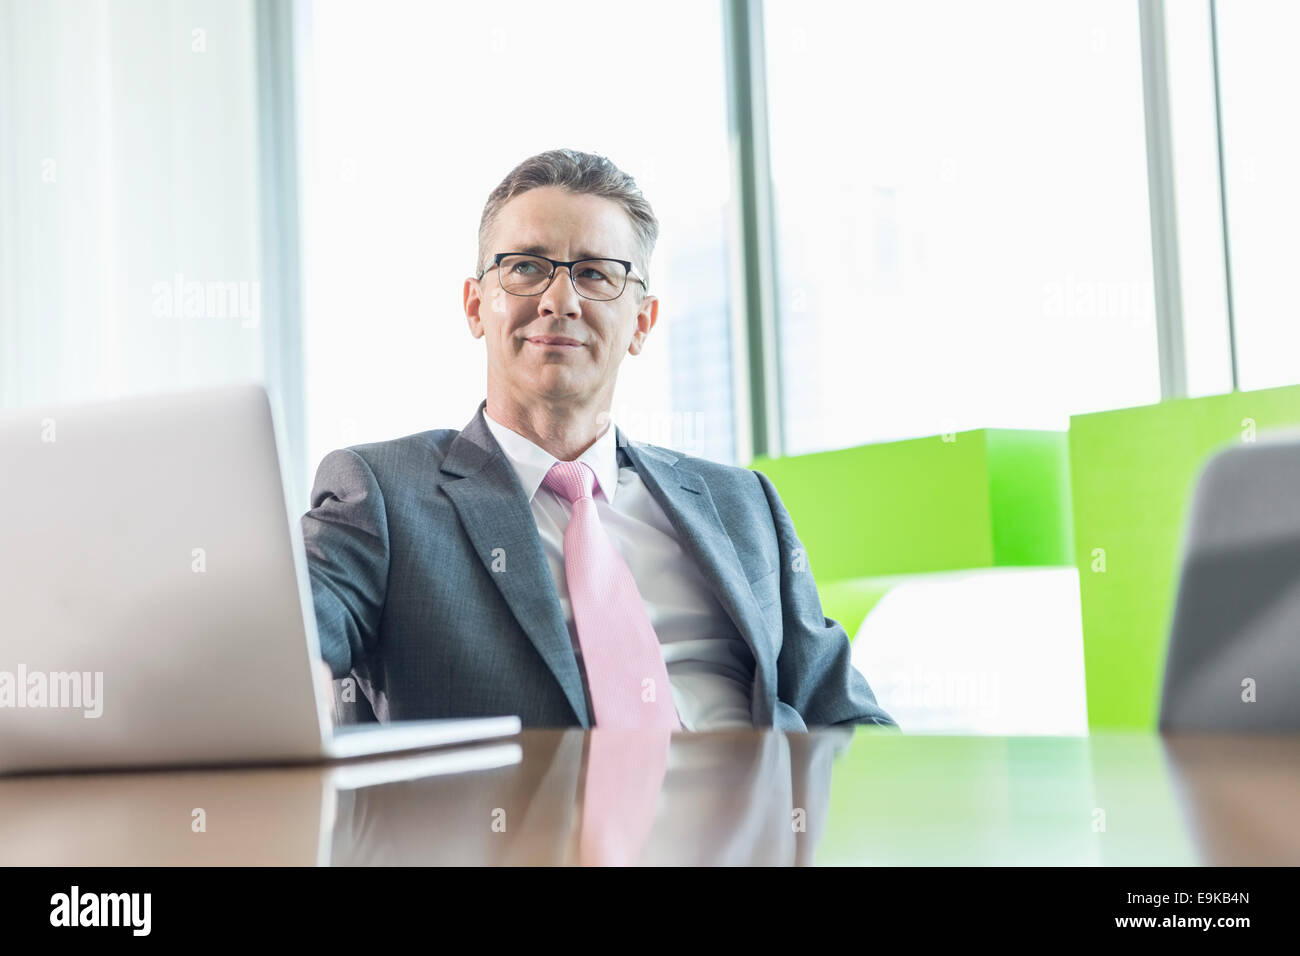 Middle-aged man with laptop sitting at conference table Photo Stock